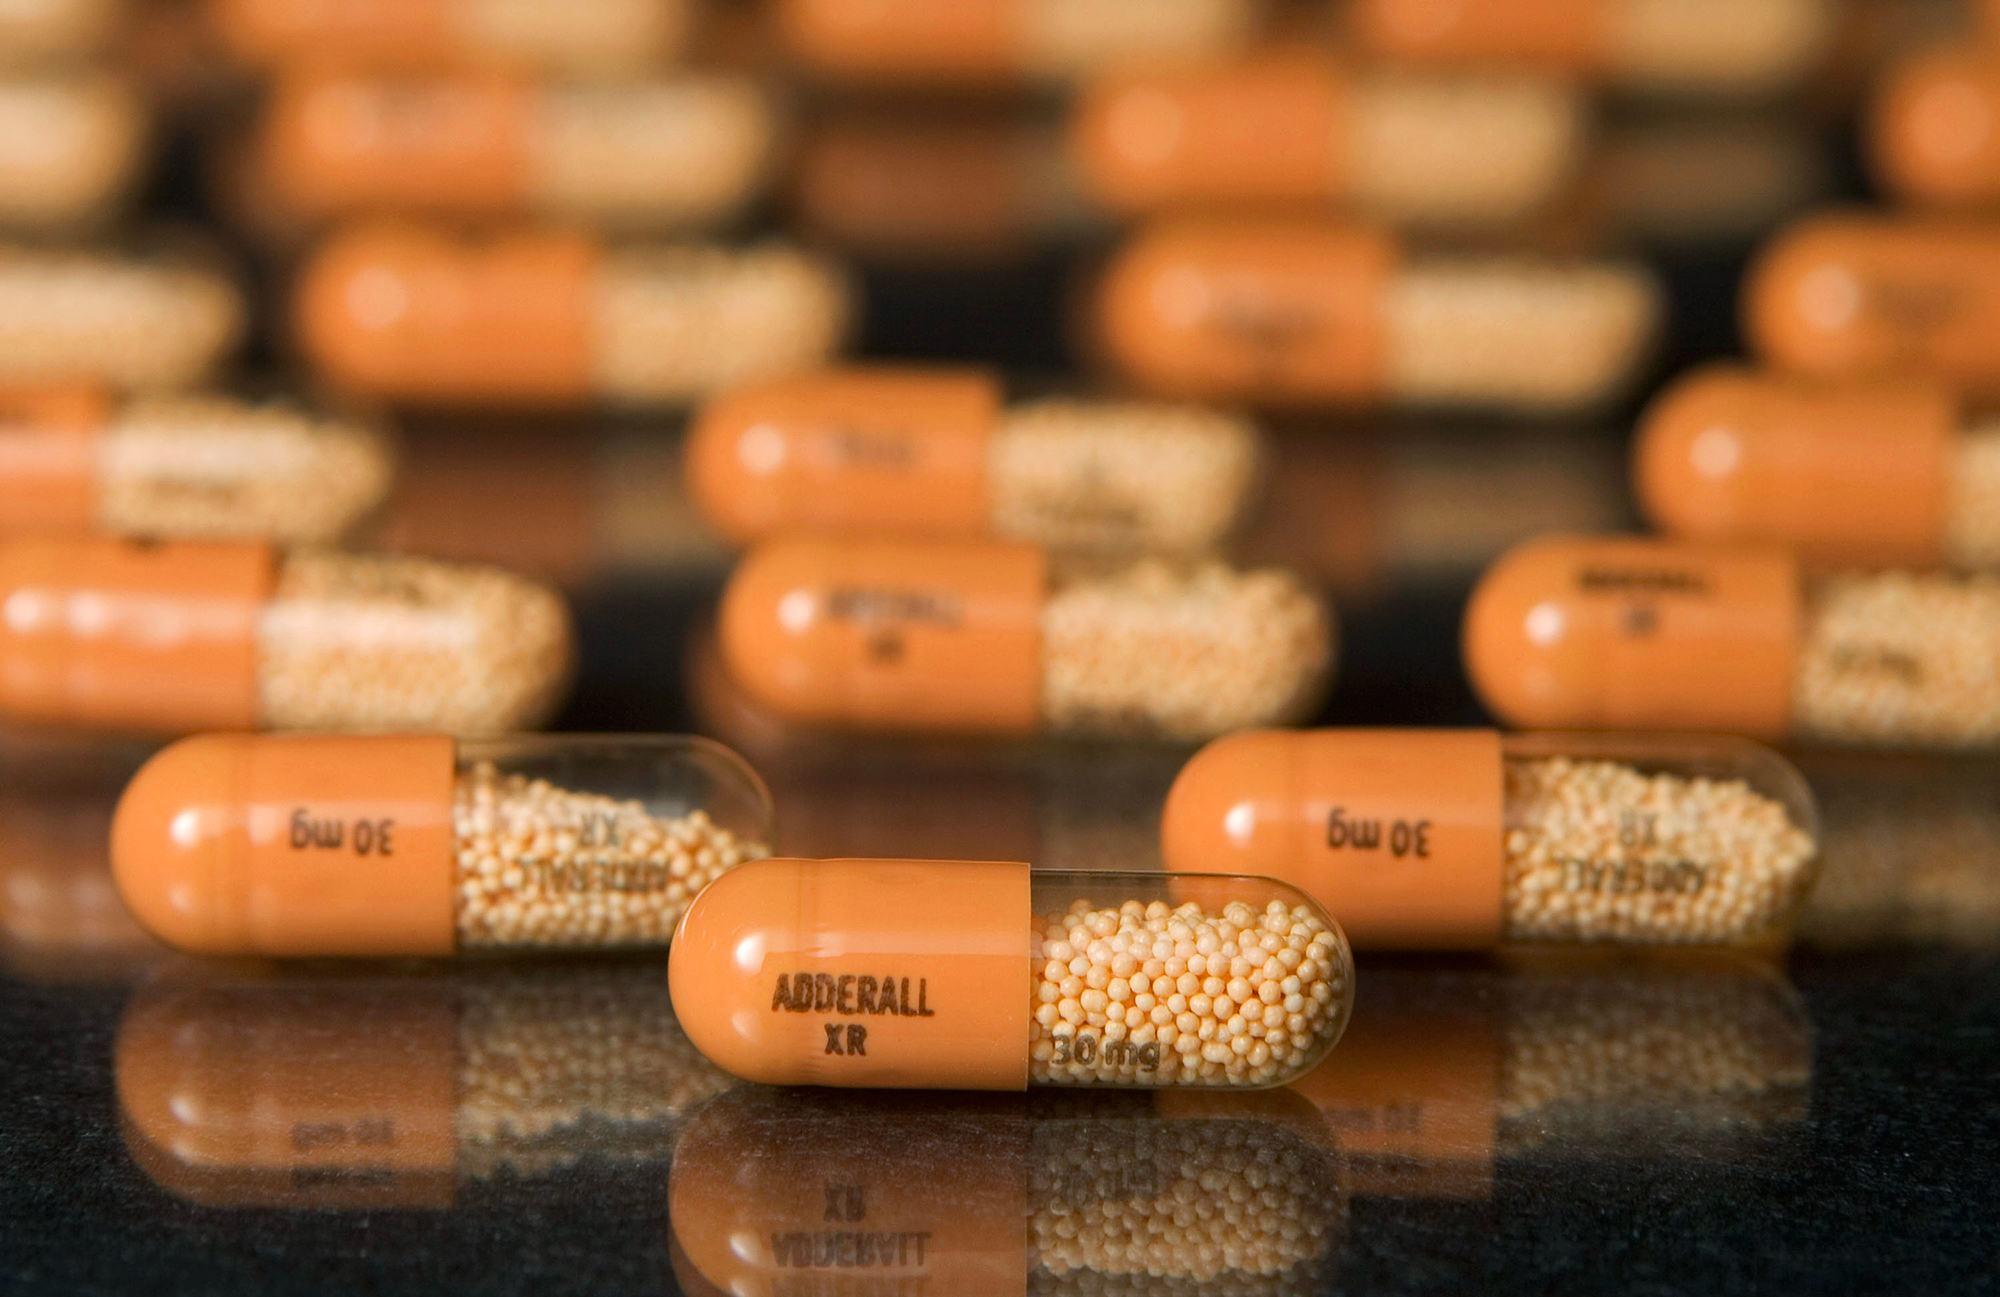 Misuse Of ADHD Drugs By Young Adults Drives Rise In ER Visits